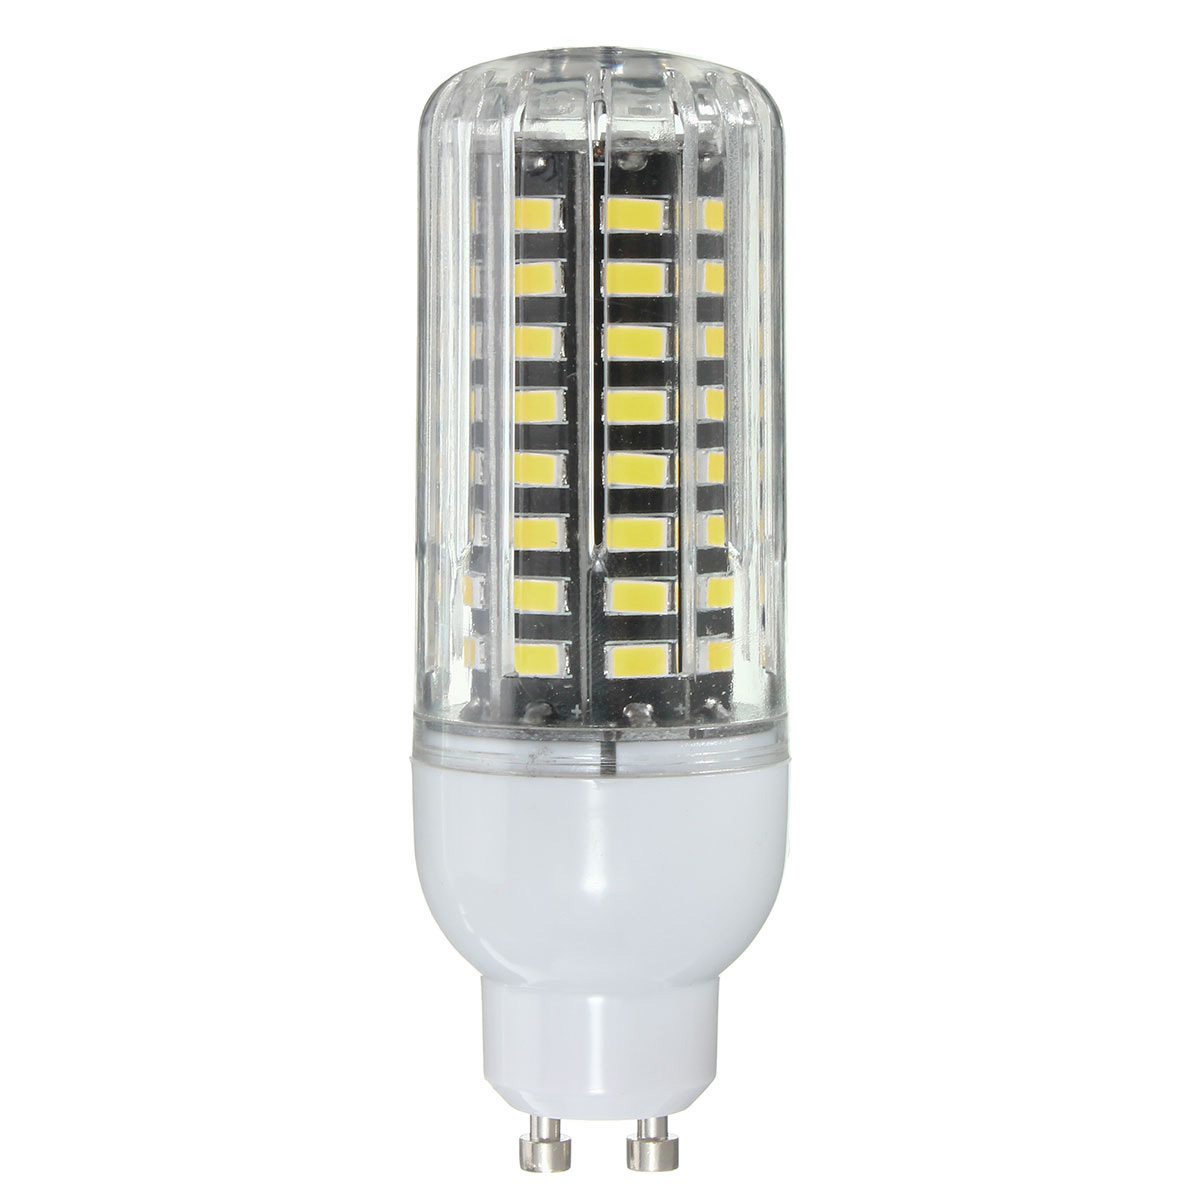 E27 E14 E12 E17 GU10 B22 LED Corn Bulb 7W 72 SMD 5736 LED Lamp Ampoule Led Light AC85-265V